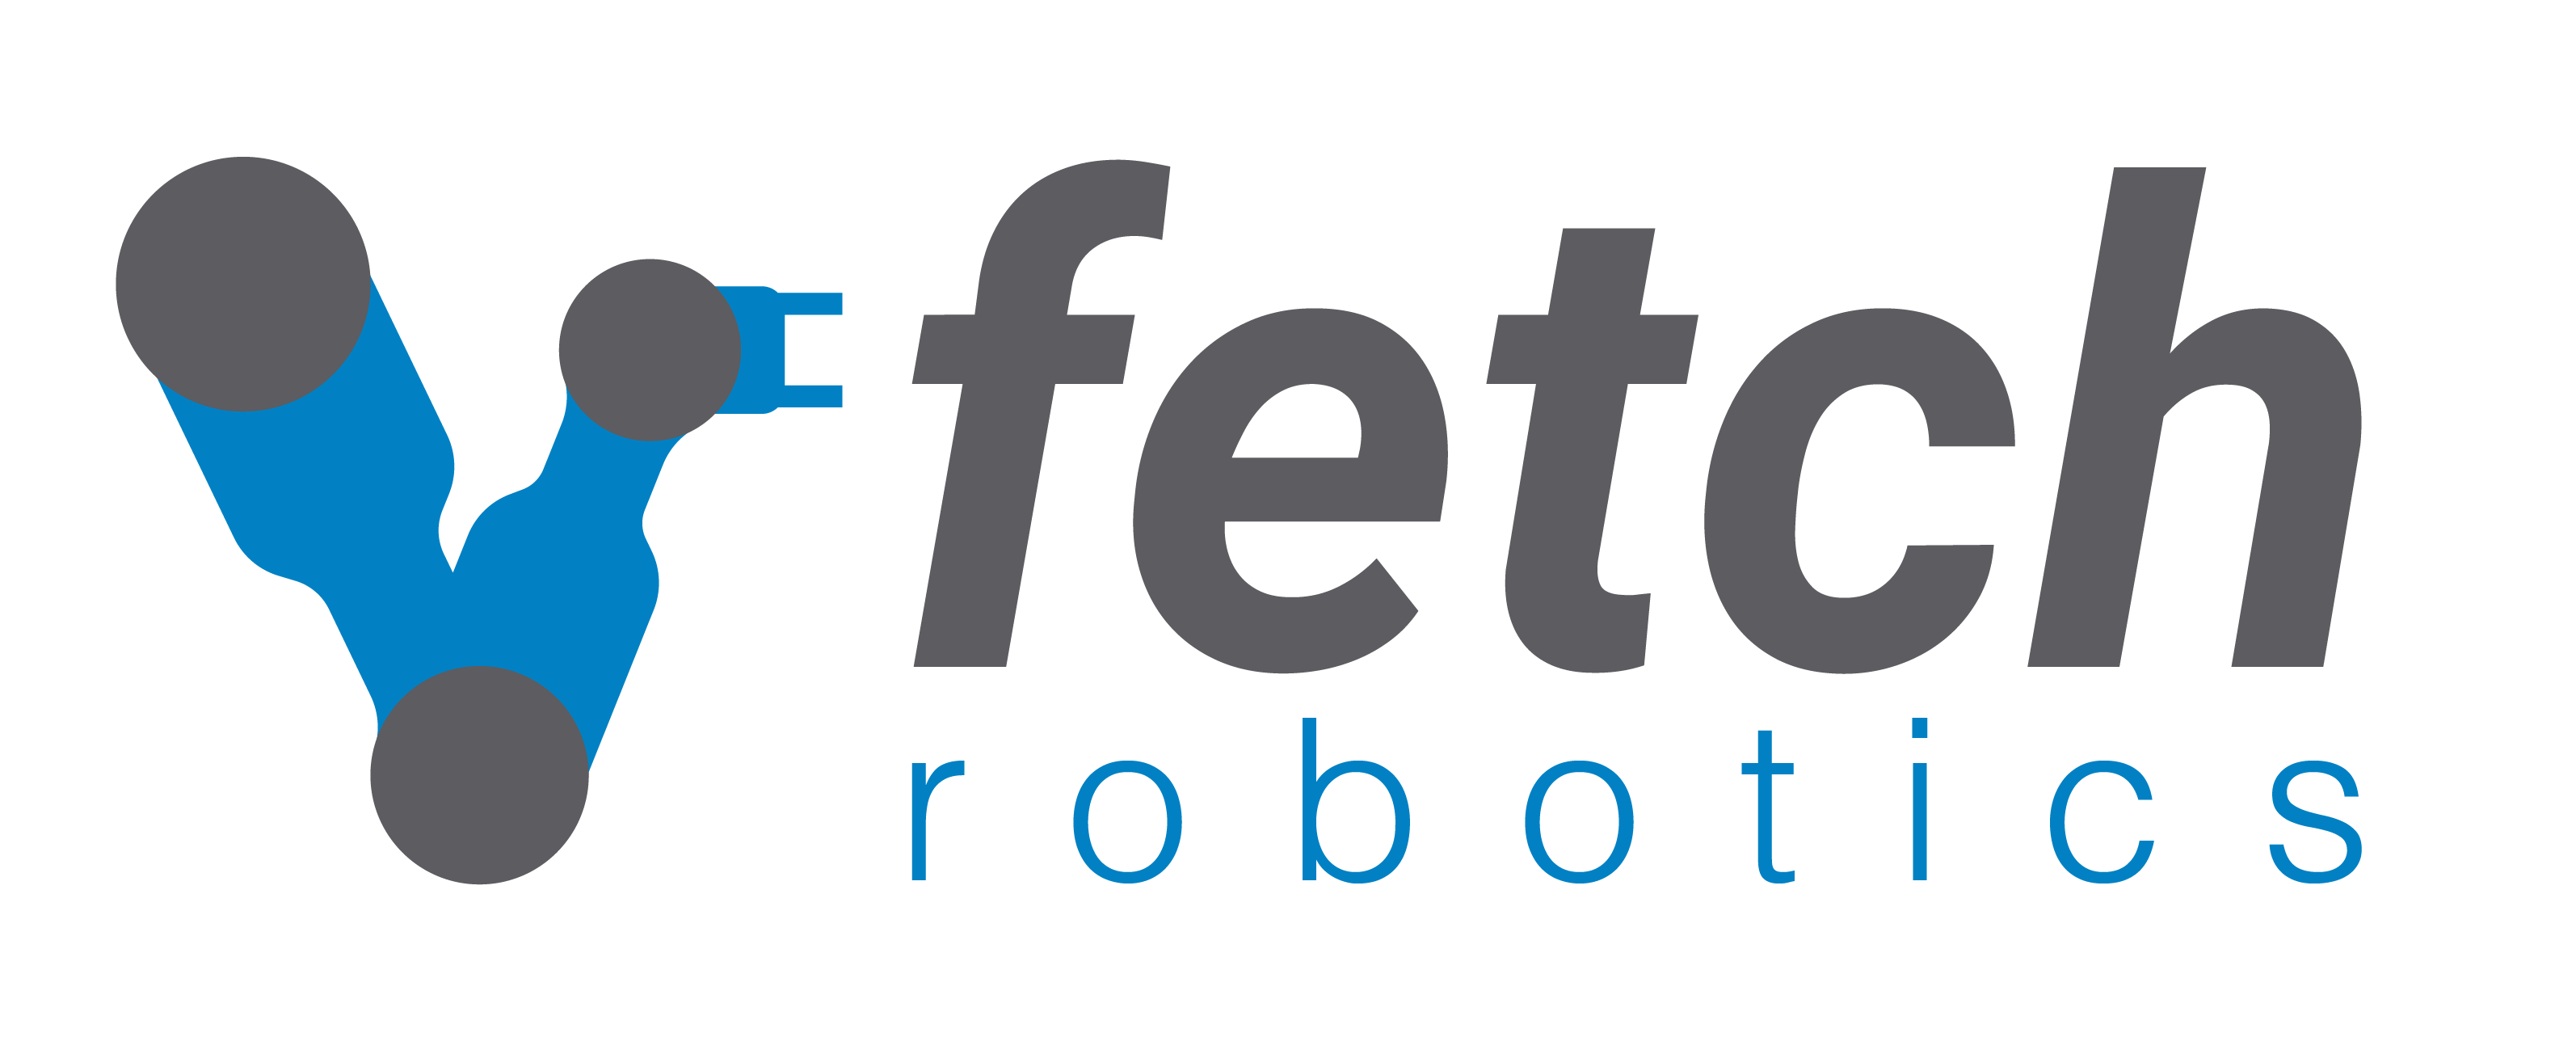 The Fetch robot was adopted for research by the National Institute of Advanced Industrial Science and Technology in Tokyo!!